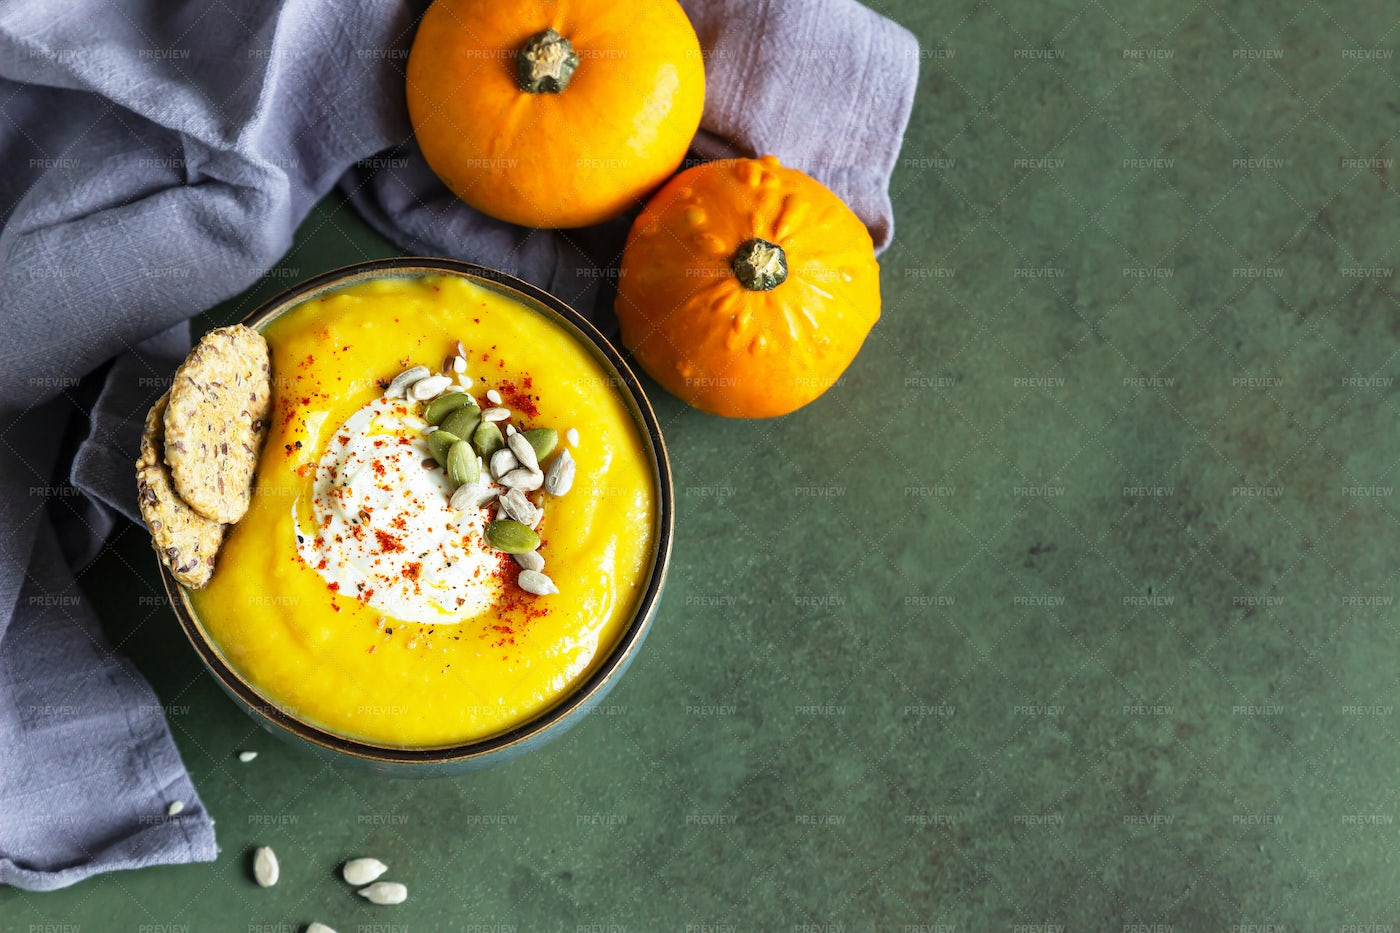 Pumpkin Soup Served In Bowl: Stock Photos